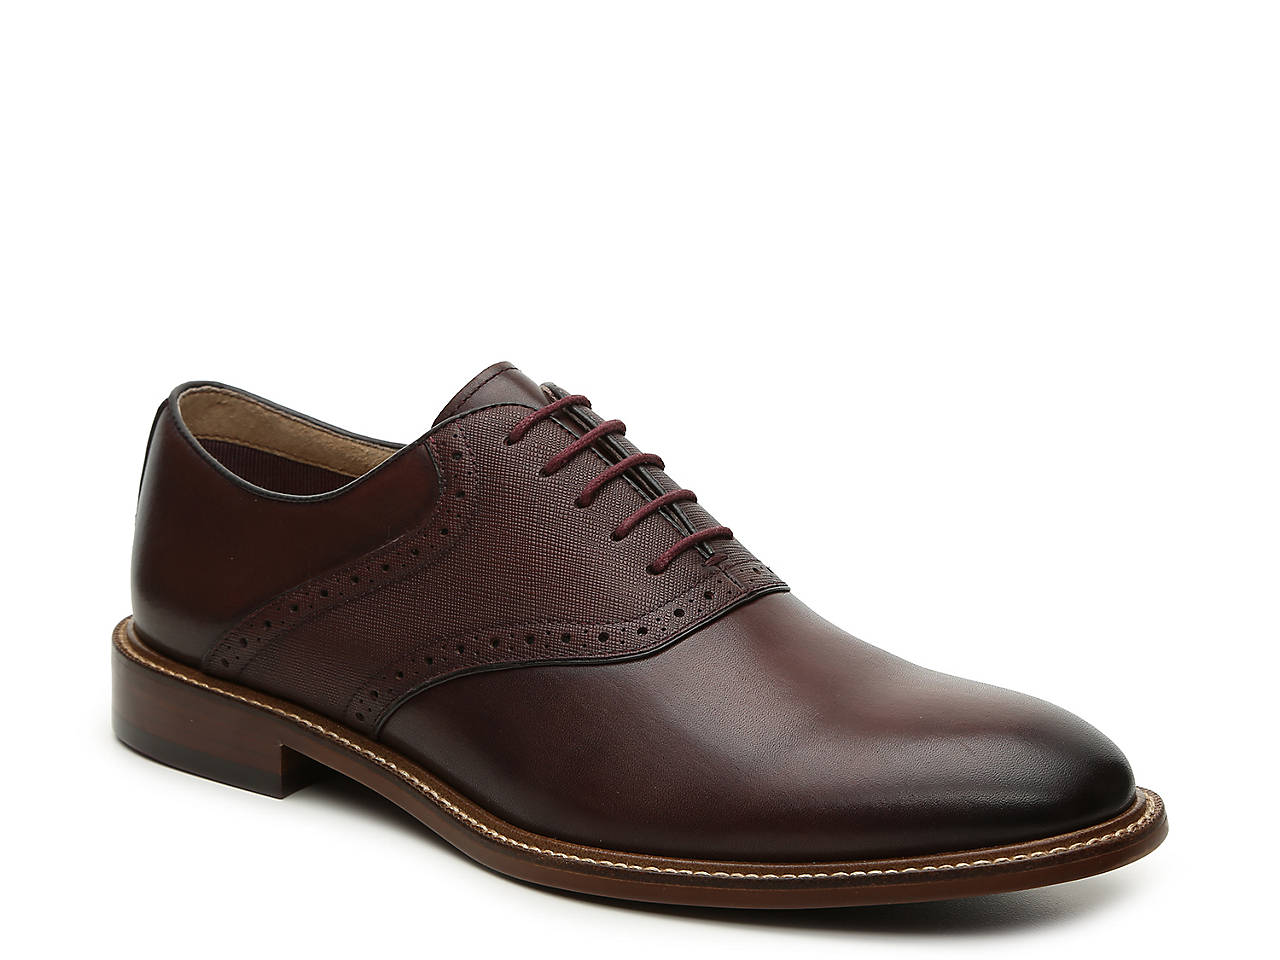 exclusive shoes wholesale online complete range of articles Ybilia Saddle Oxford